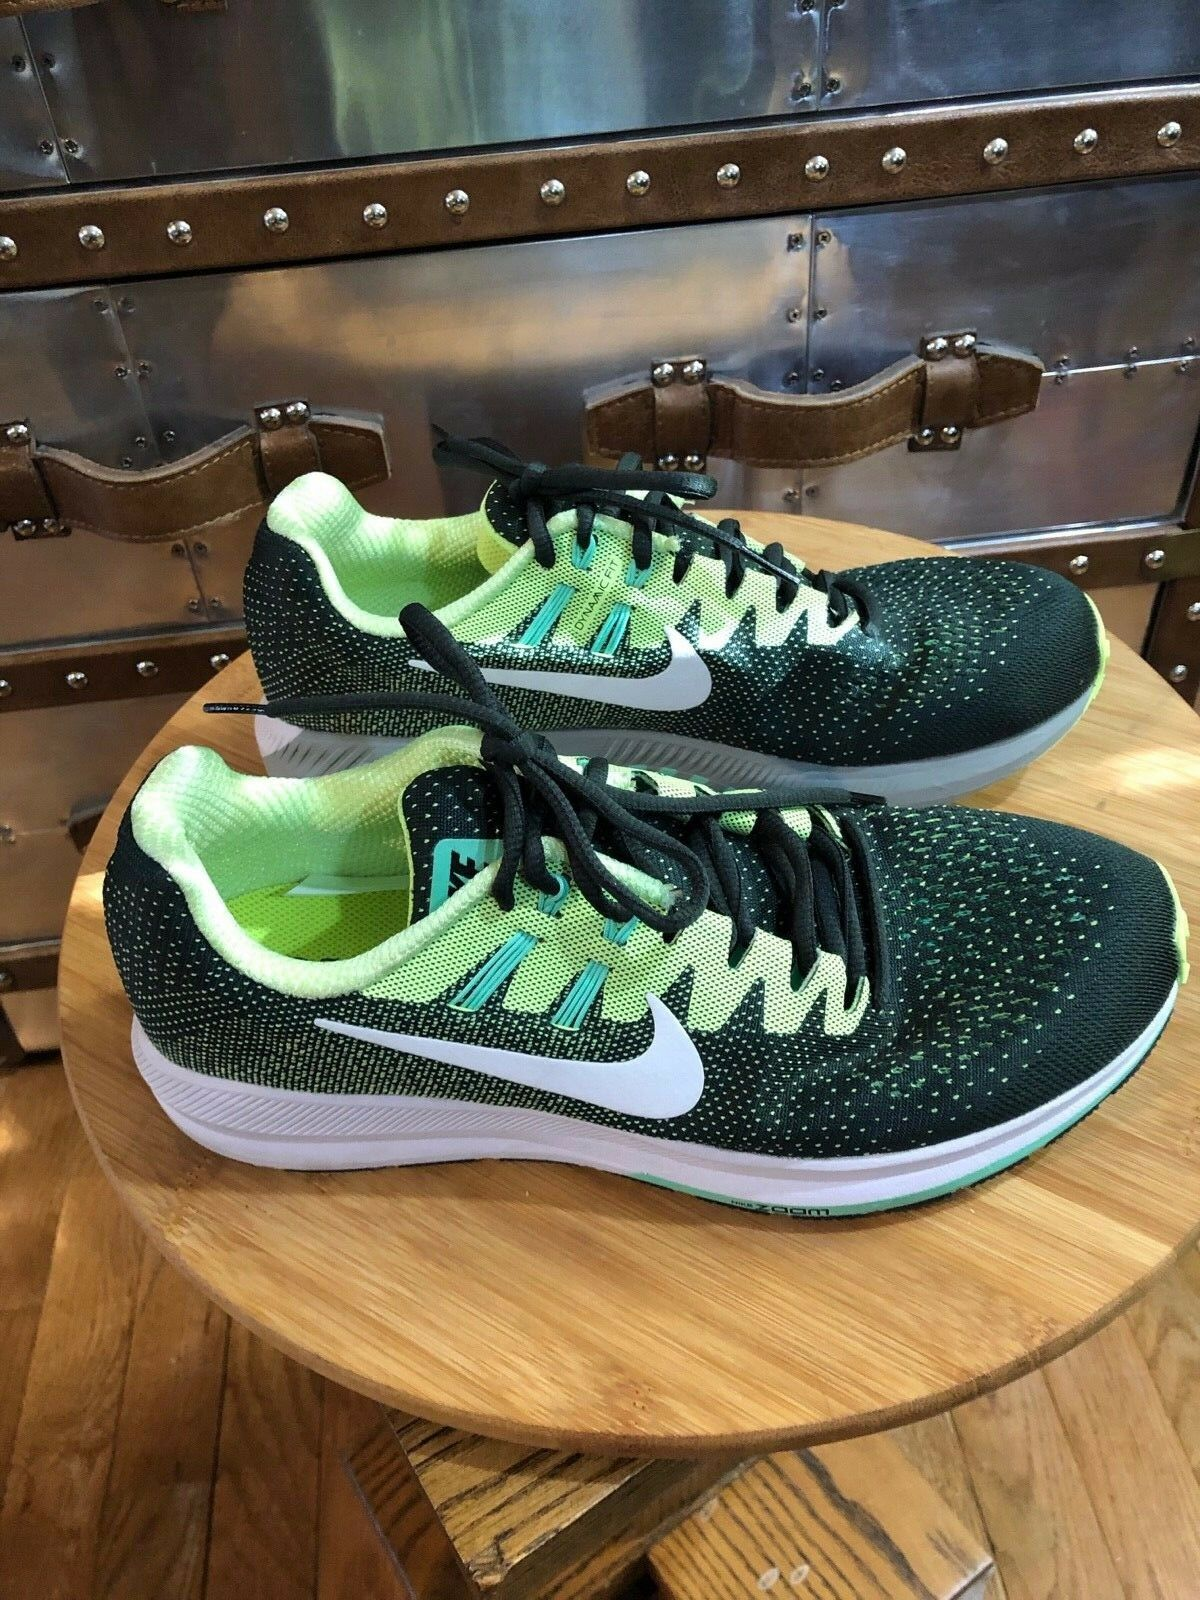 Used Excellent 849576 300 20 Structure Zoom Air Nike Rare